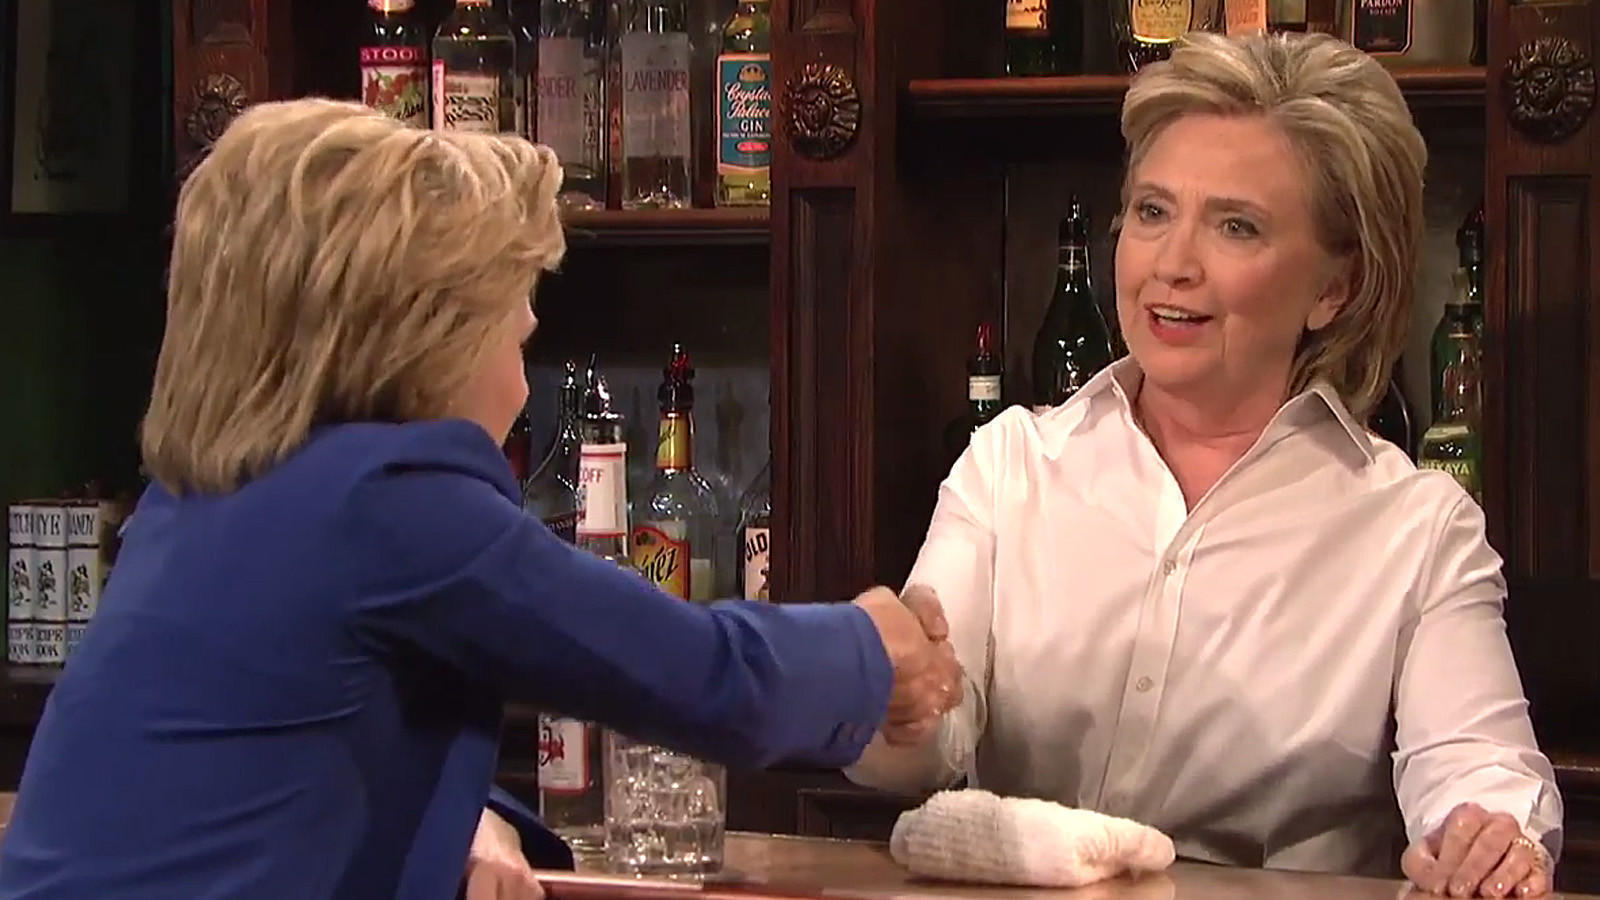 clinton yearns to do somersaults after watching u0027snl u0027 spoof la times